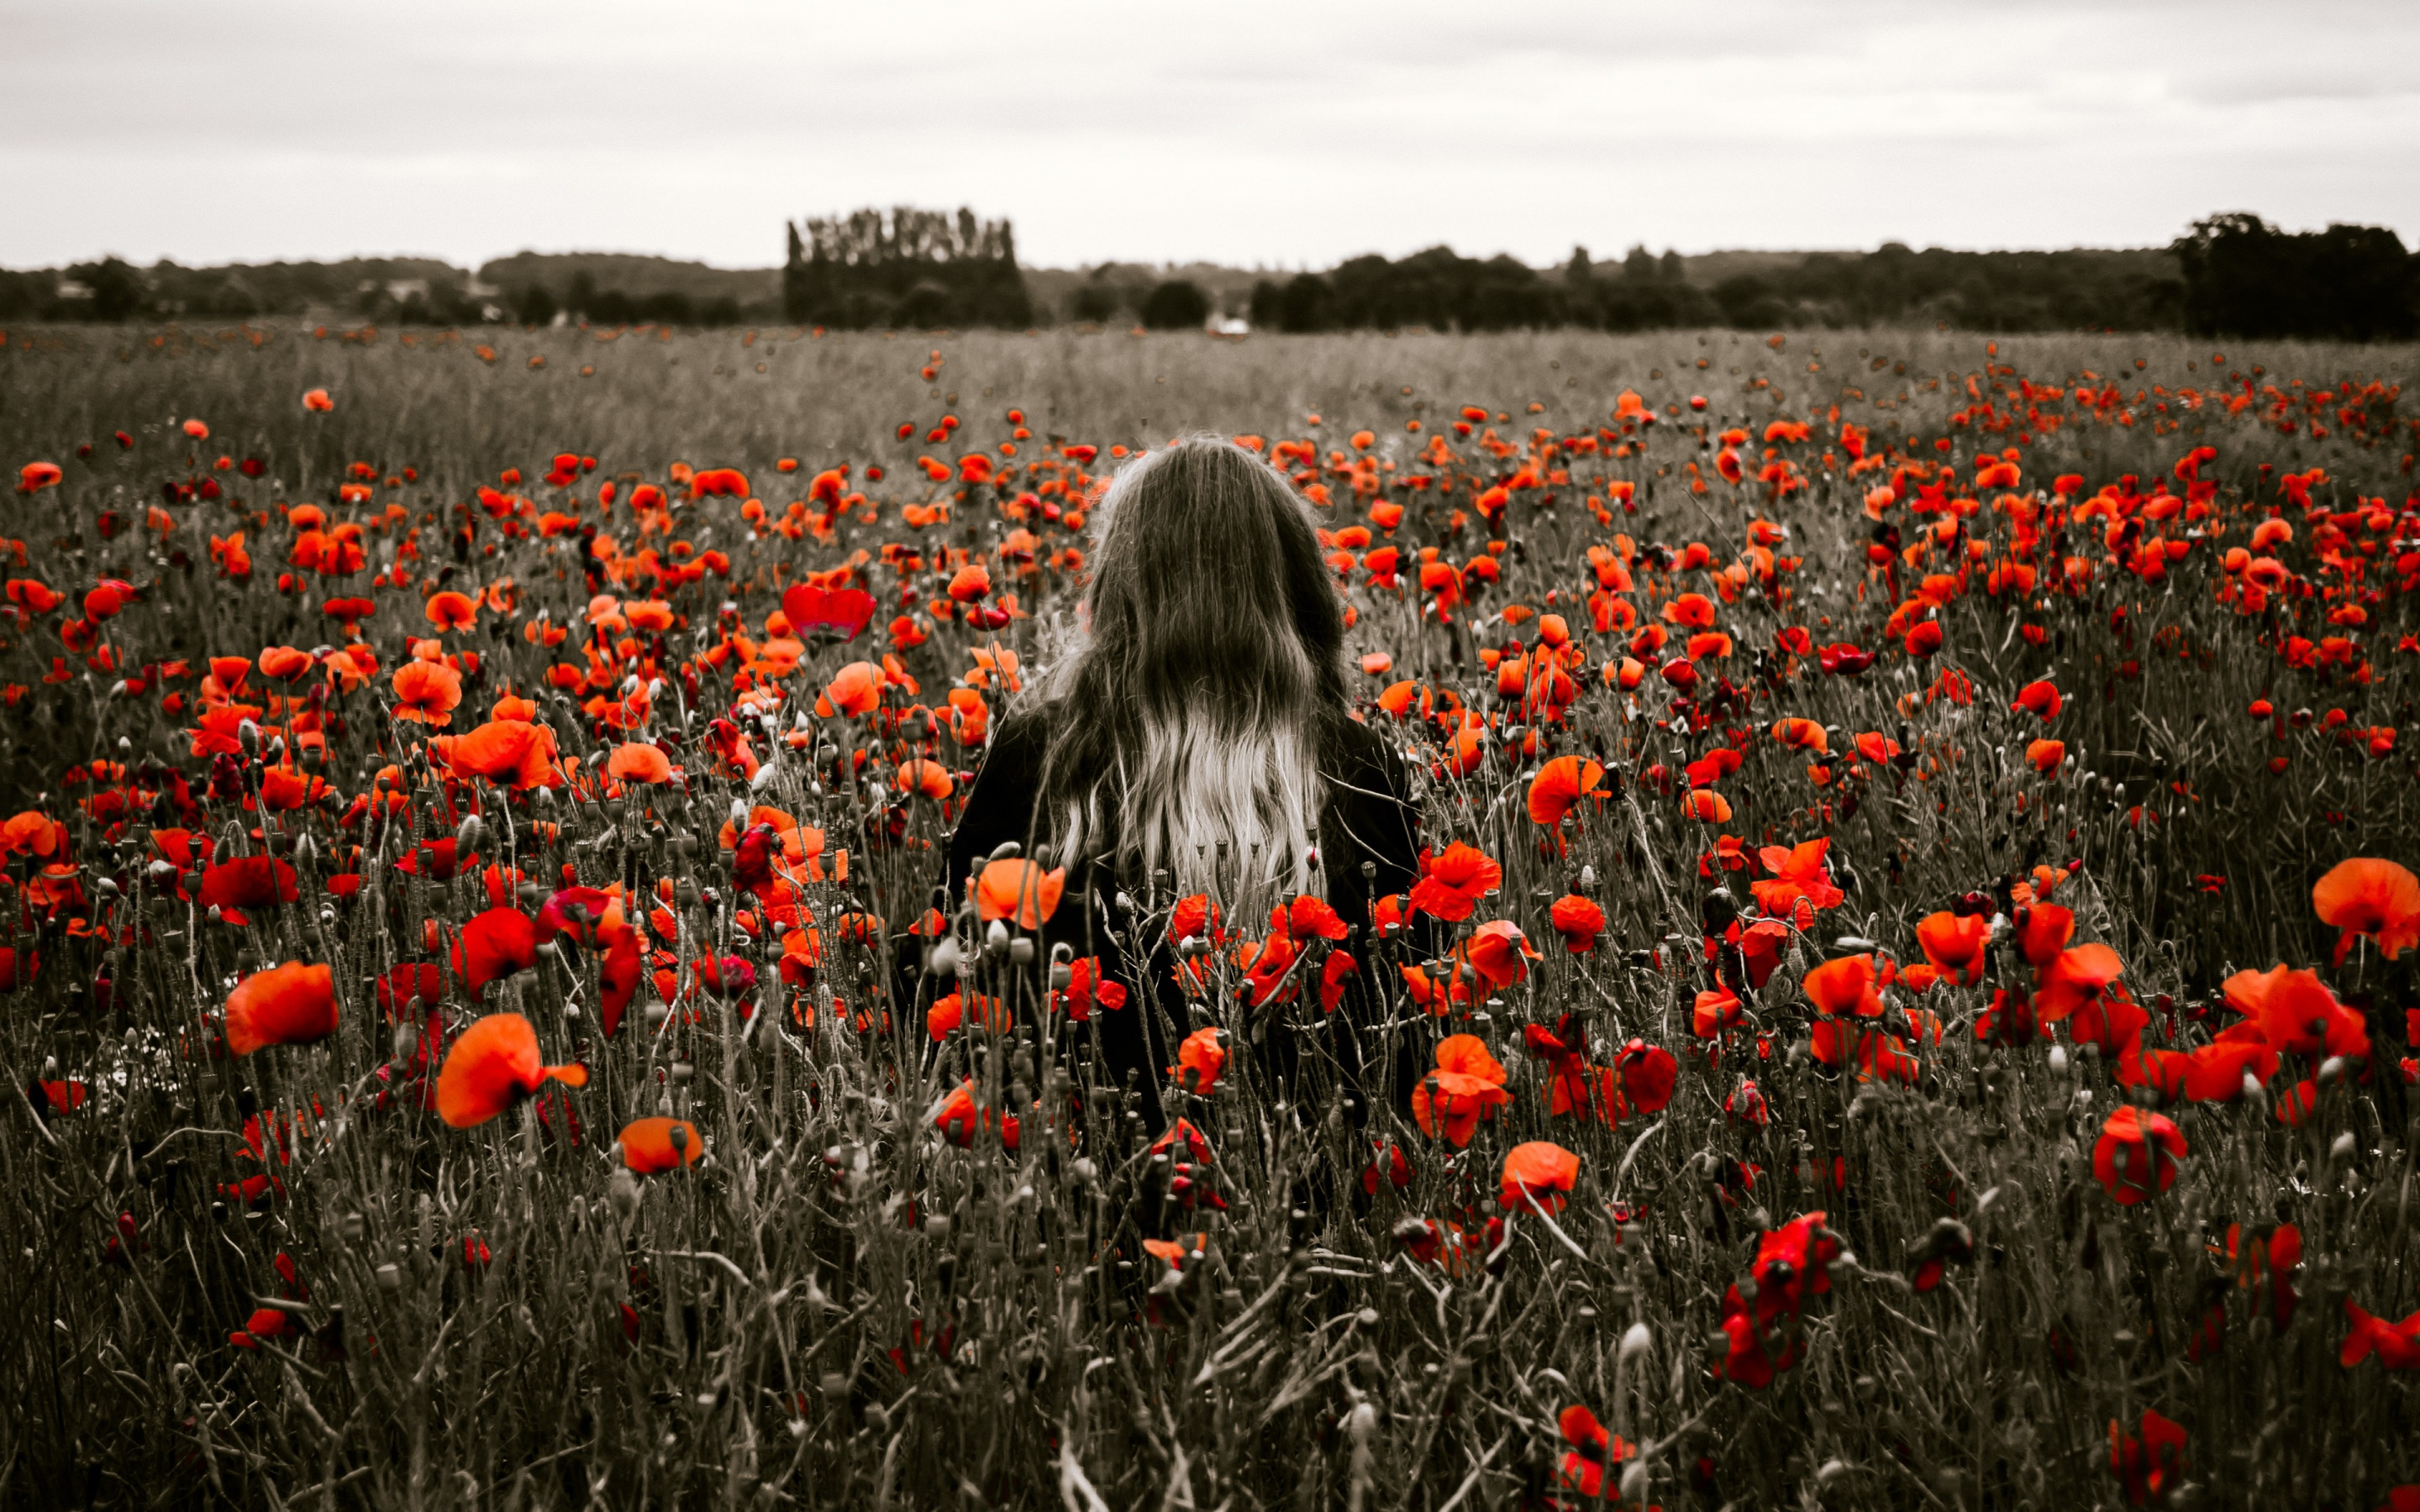 Girl in the field with red poppies wallpaper 2880x1800